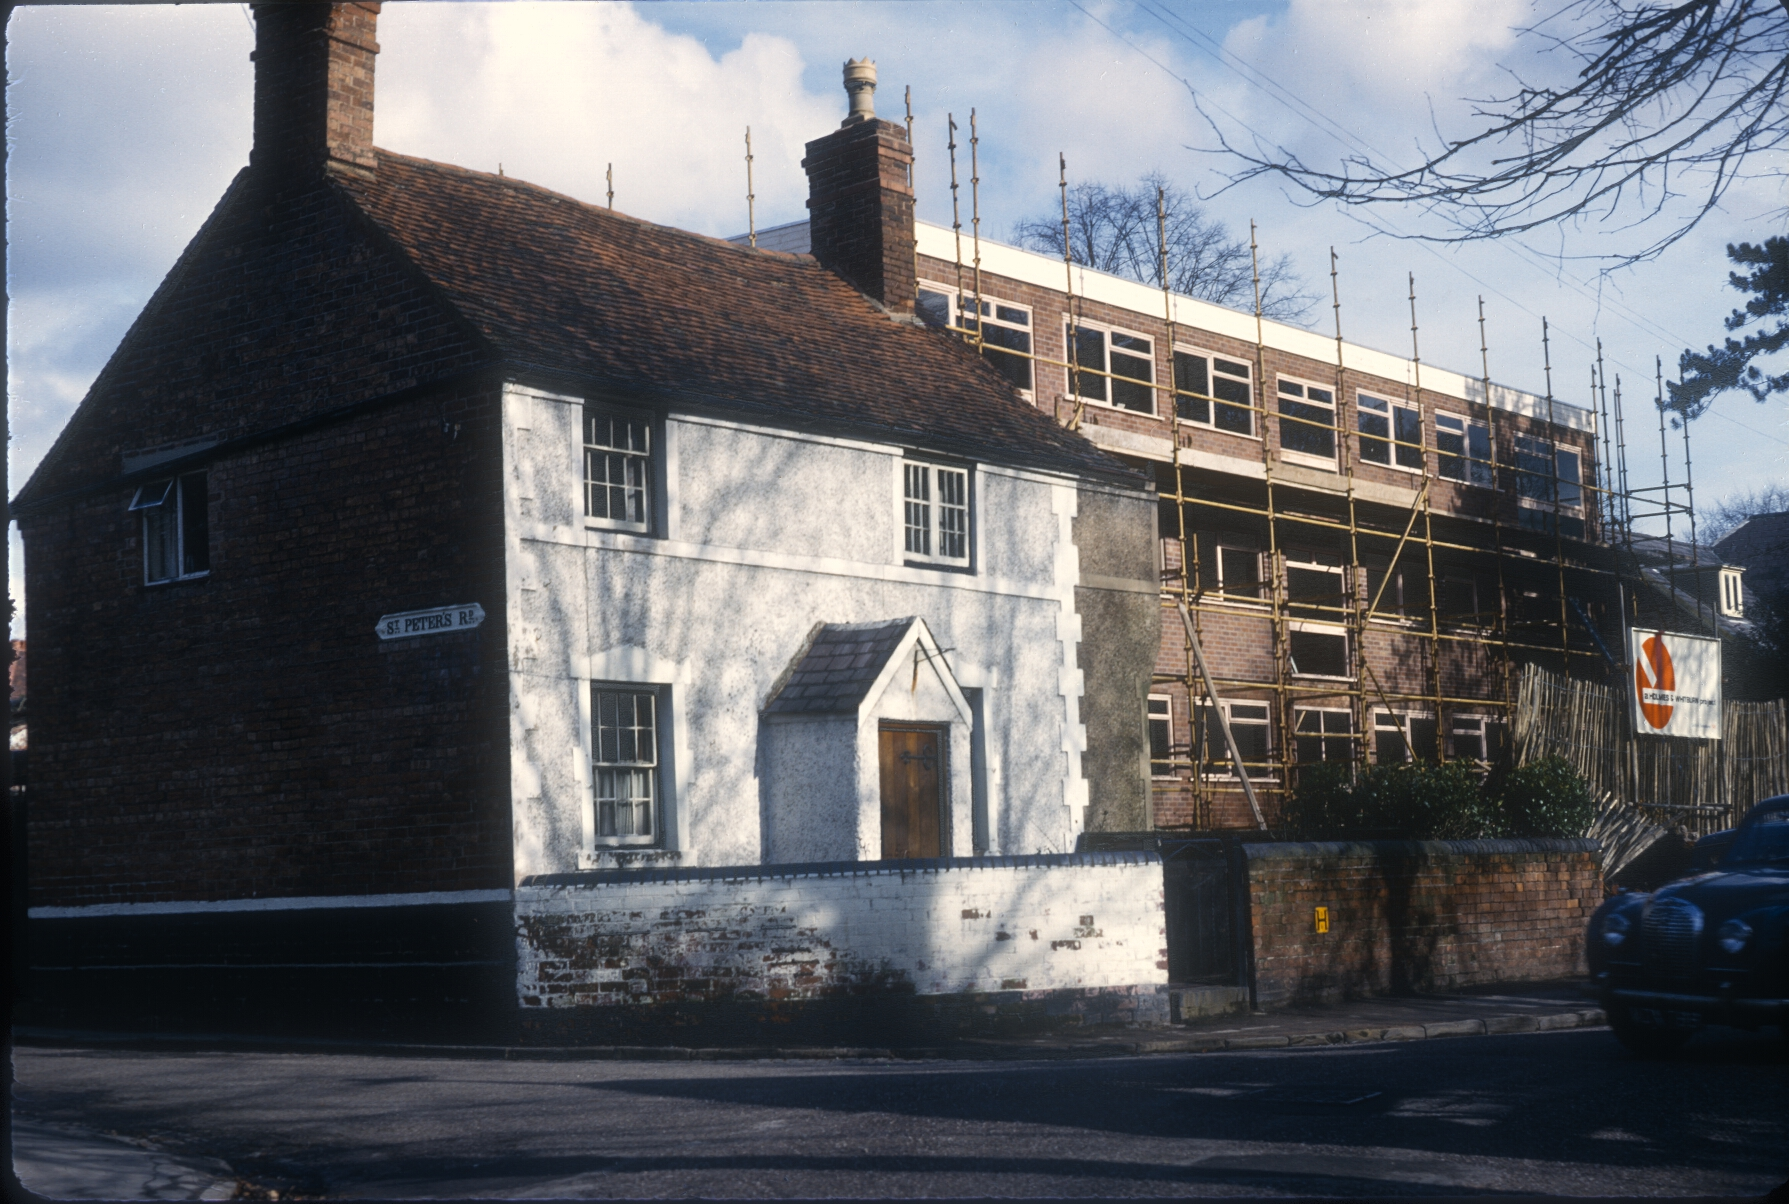 Harborne St Peters Road, No.8, (Once a Post Office) New Flats under construction to the rear. 26th February 1967